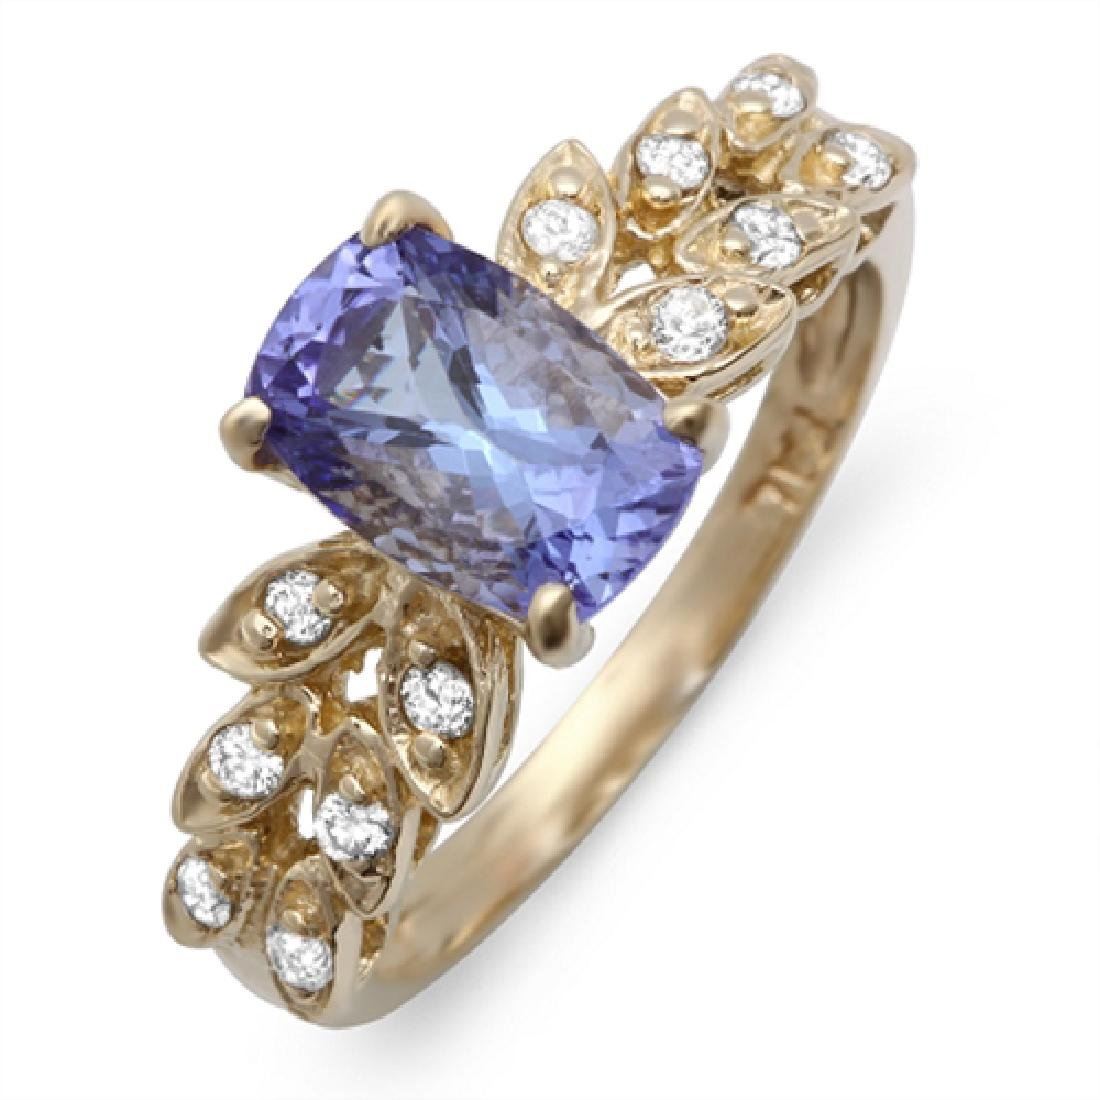 1.78 Carat Natural Tanzanite 18K Solid Yellow Gold